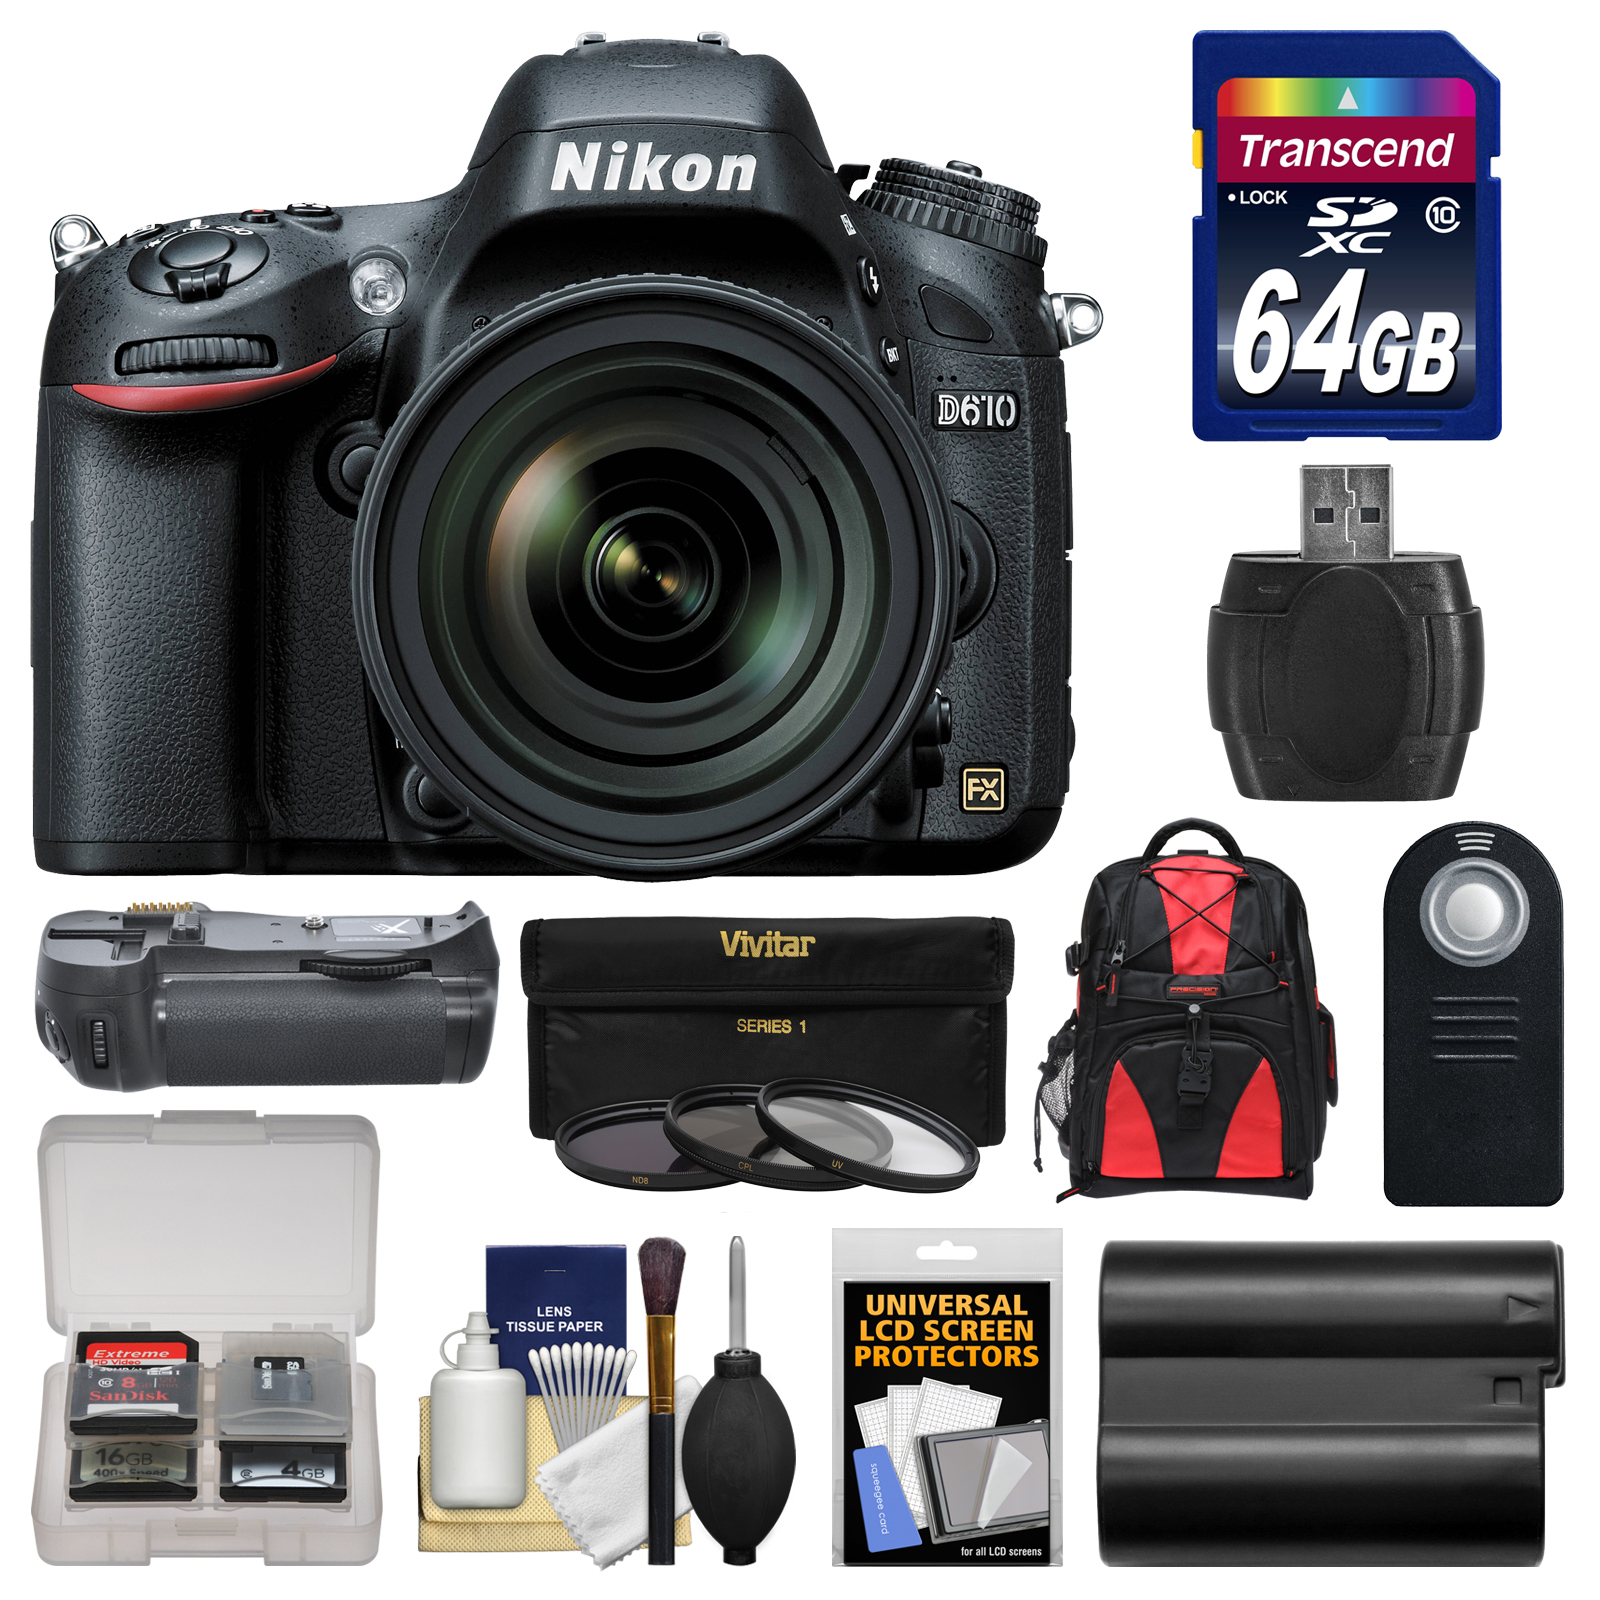 Nikon D610 Digital SLR Camera & 24-85mm VR AF-S Zoom Lens with 64GB Card + Backpack + Grip + Battery + 3... by Nikon